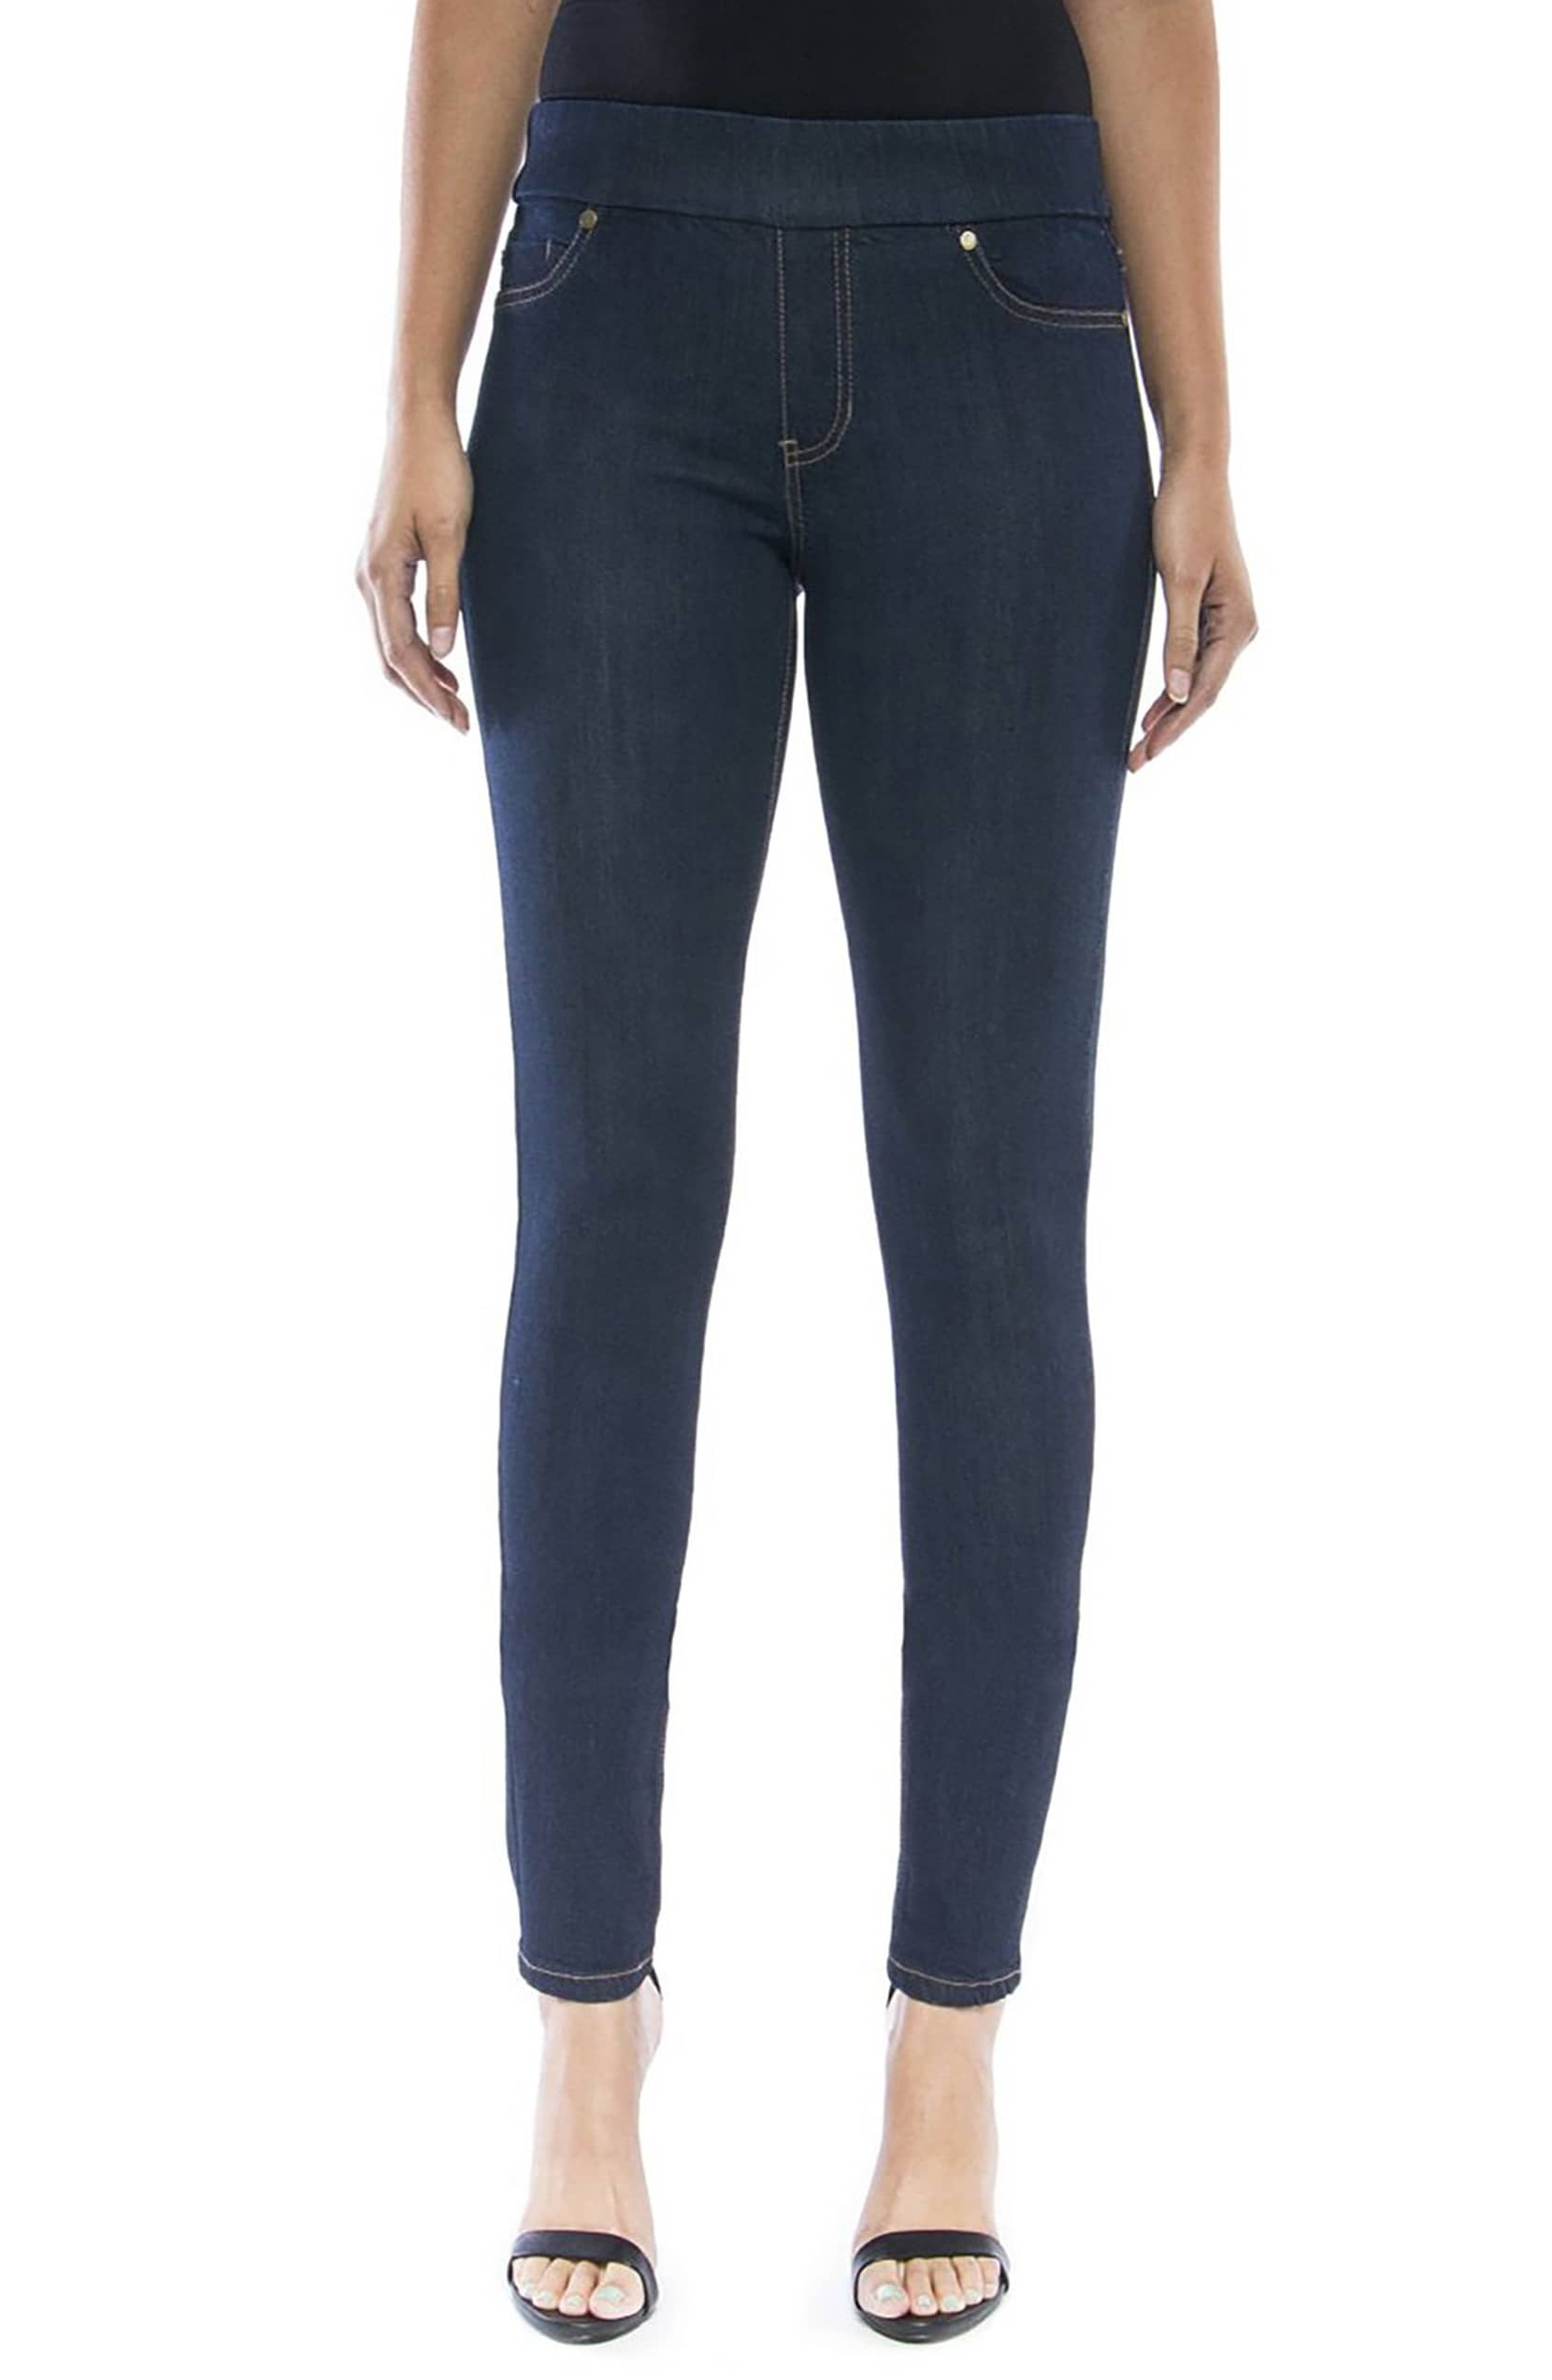 Liverpool-Jeans-Company-Sienna-Mid-Rise-Soft-Stretch-Denim-Leggings